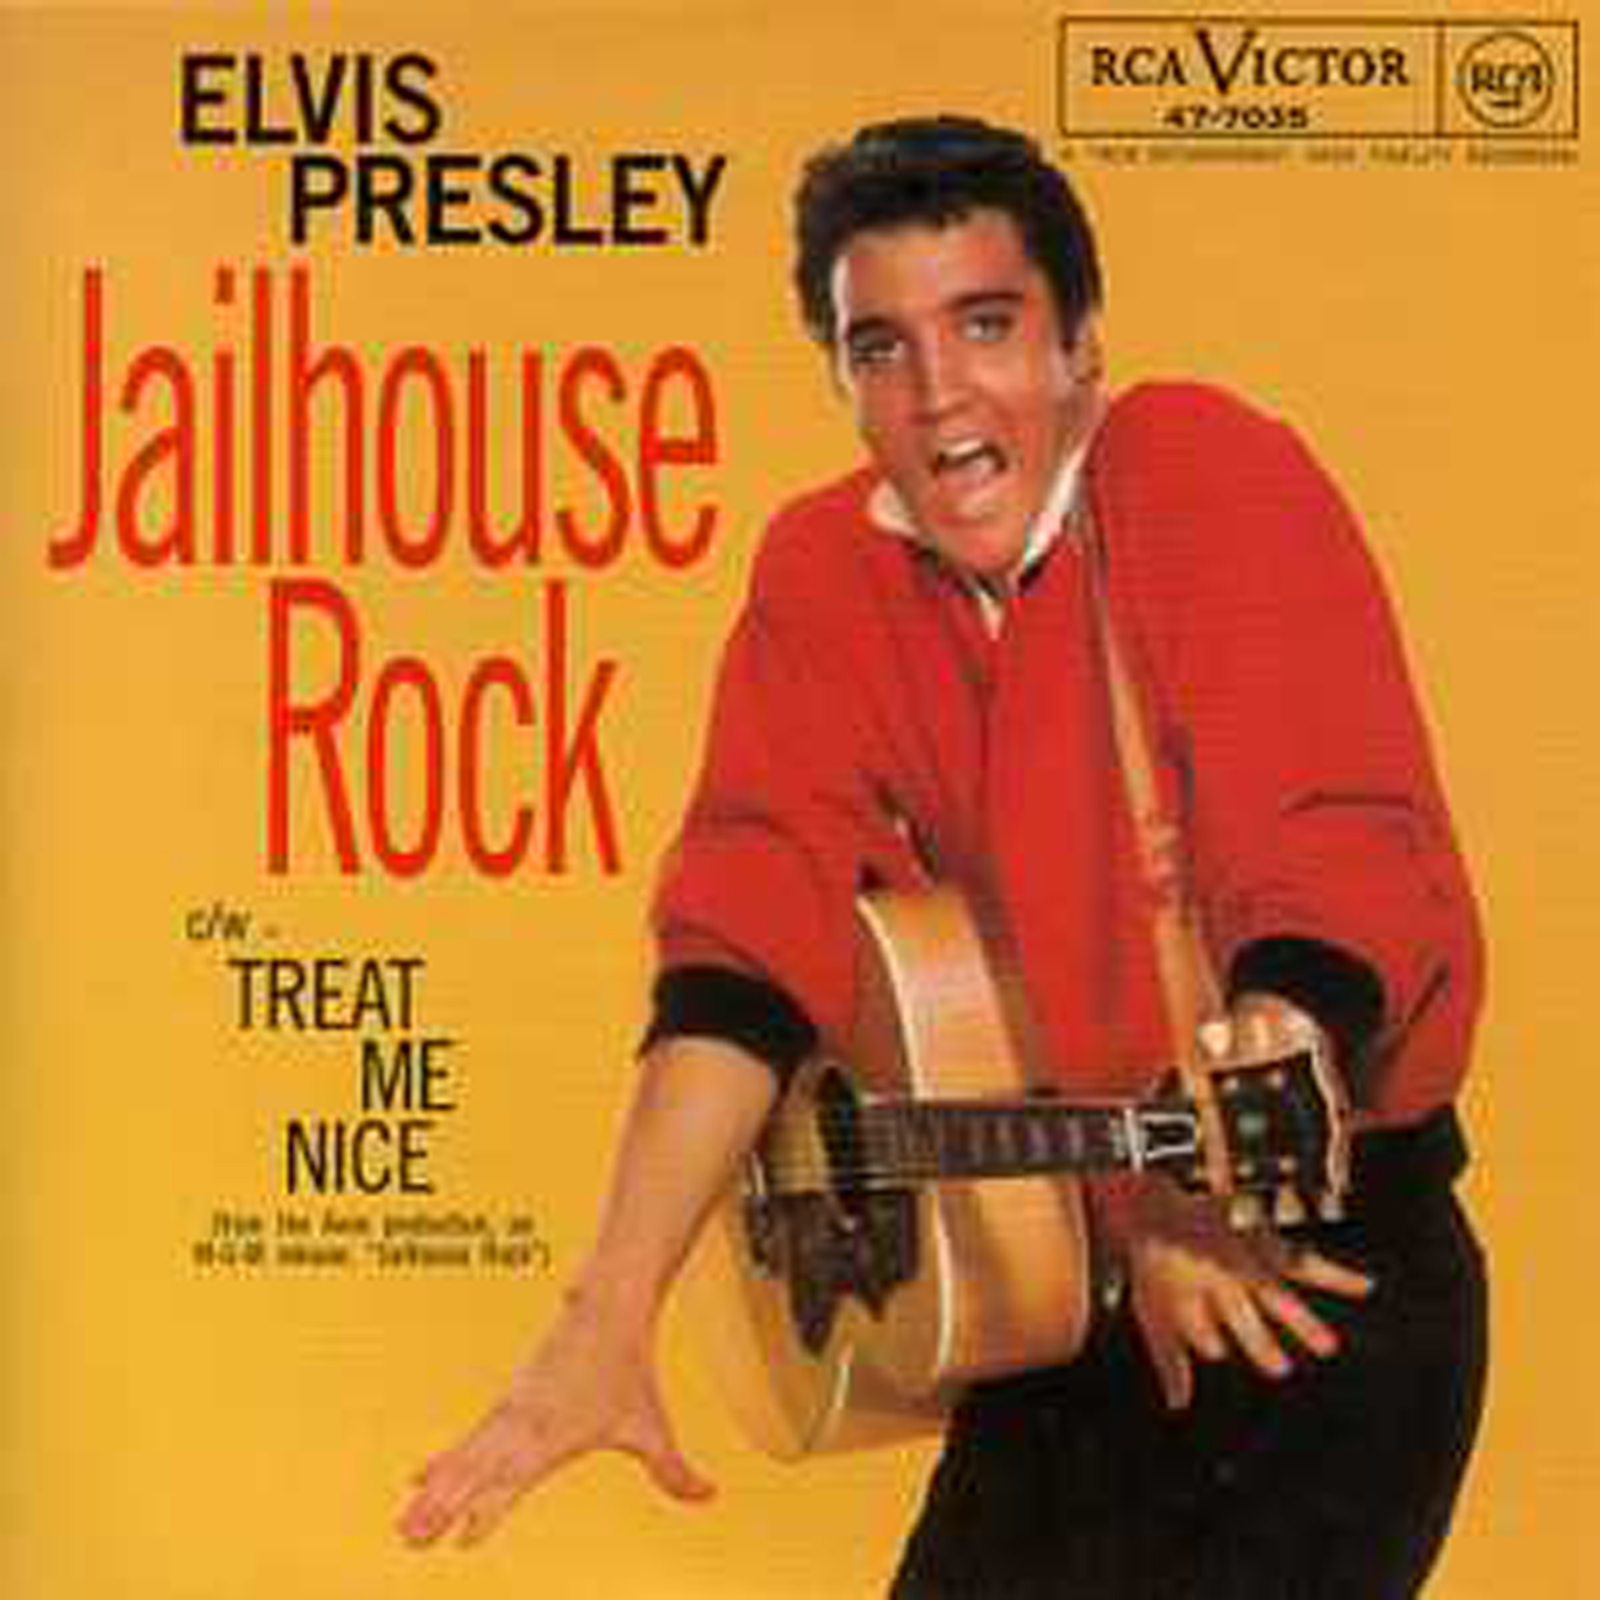 Elvis PRESLEY - Jailhouse Rock 3-track Card Sleeve